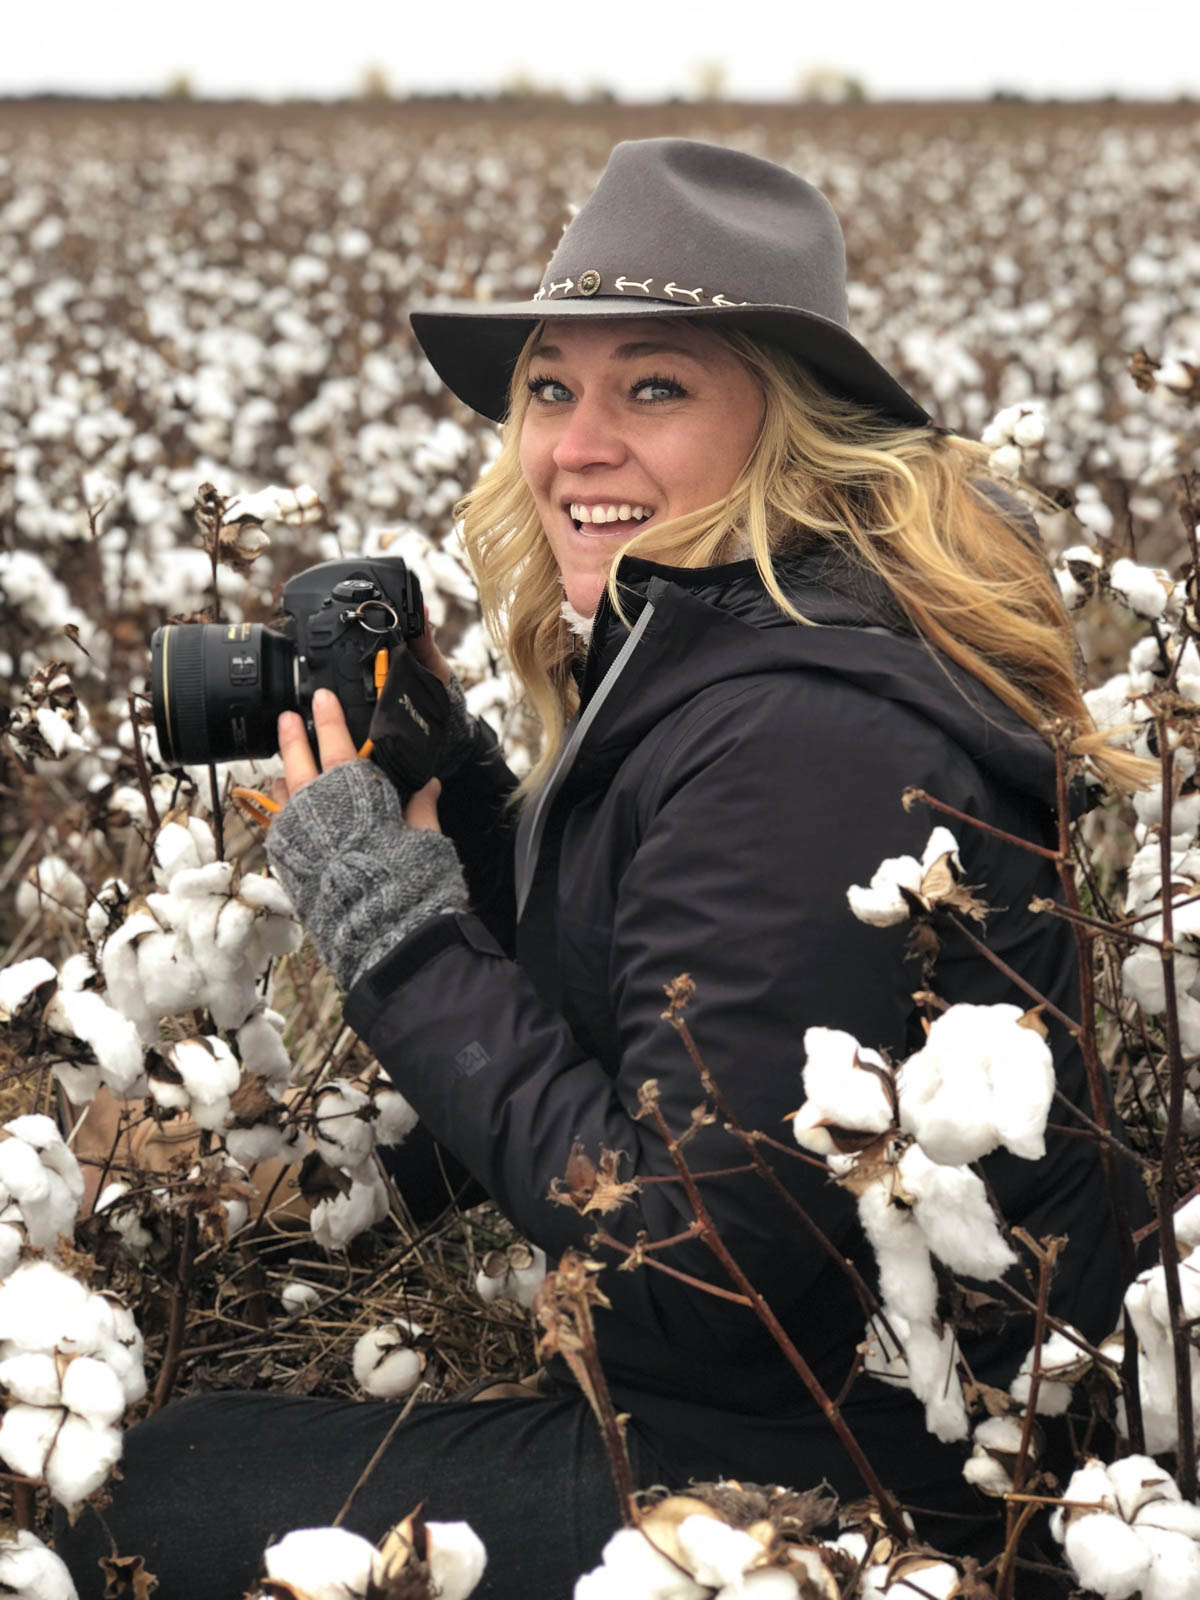 Dawn Heumann, Commercial Photographer in cotton field